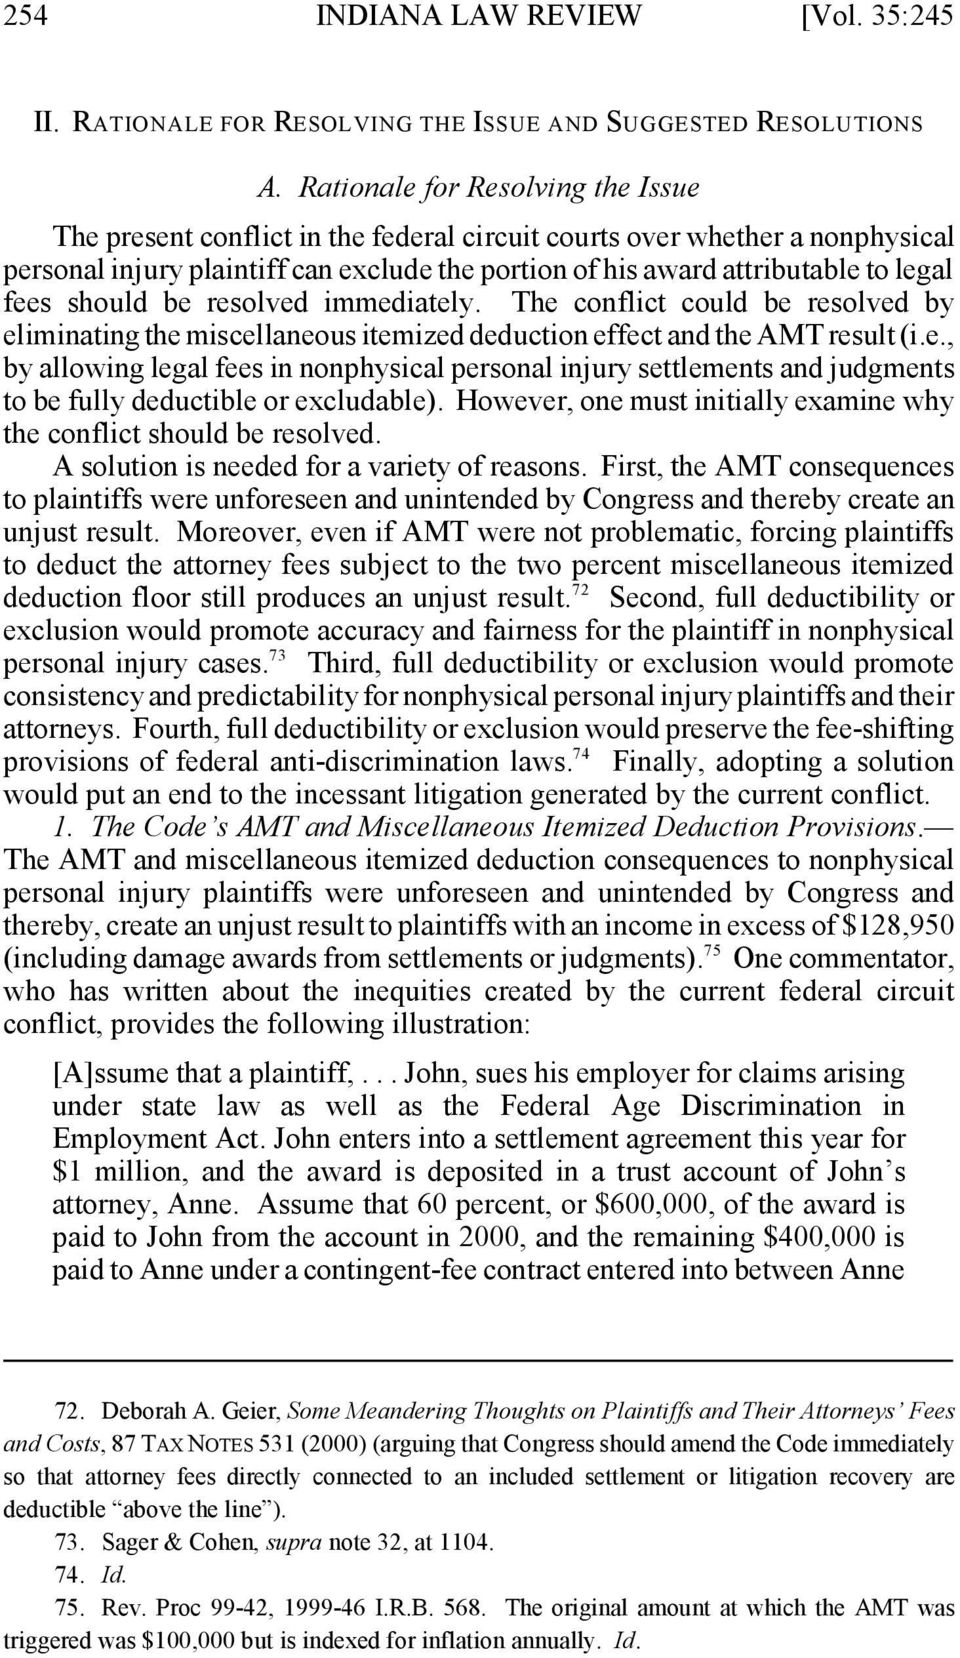 fees should be resolved immediately. The conflict could be resolved by eliminating the miscellaneous itemized deduction effect and the AMT result (i.e., by allowing legal fees in nonphysical personal injury settlements and judgments to be fully deductible or excludable).